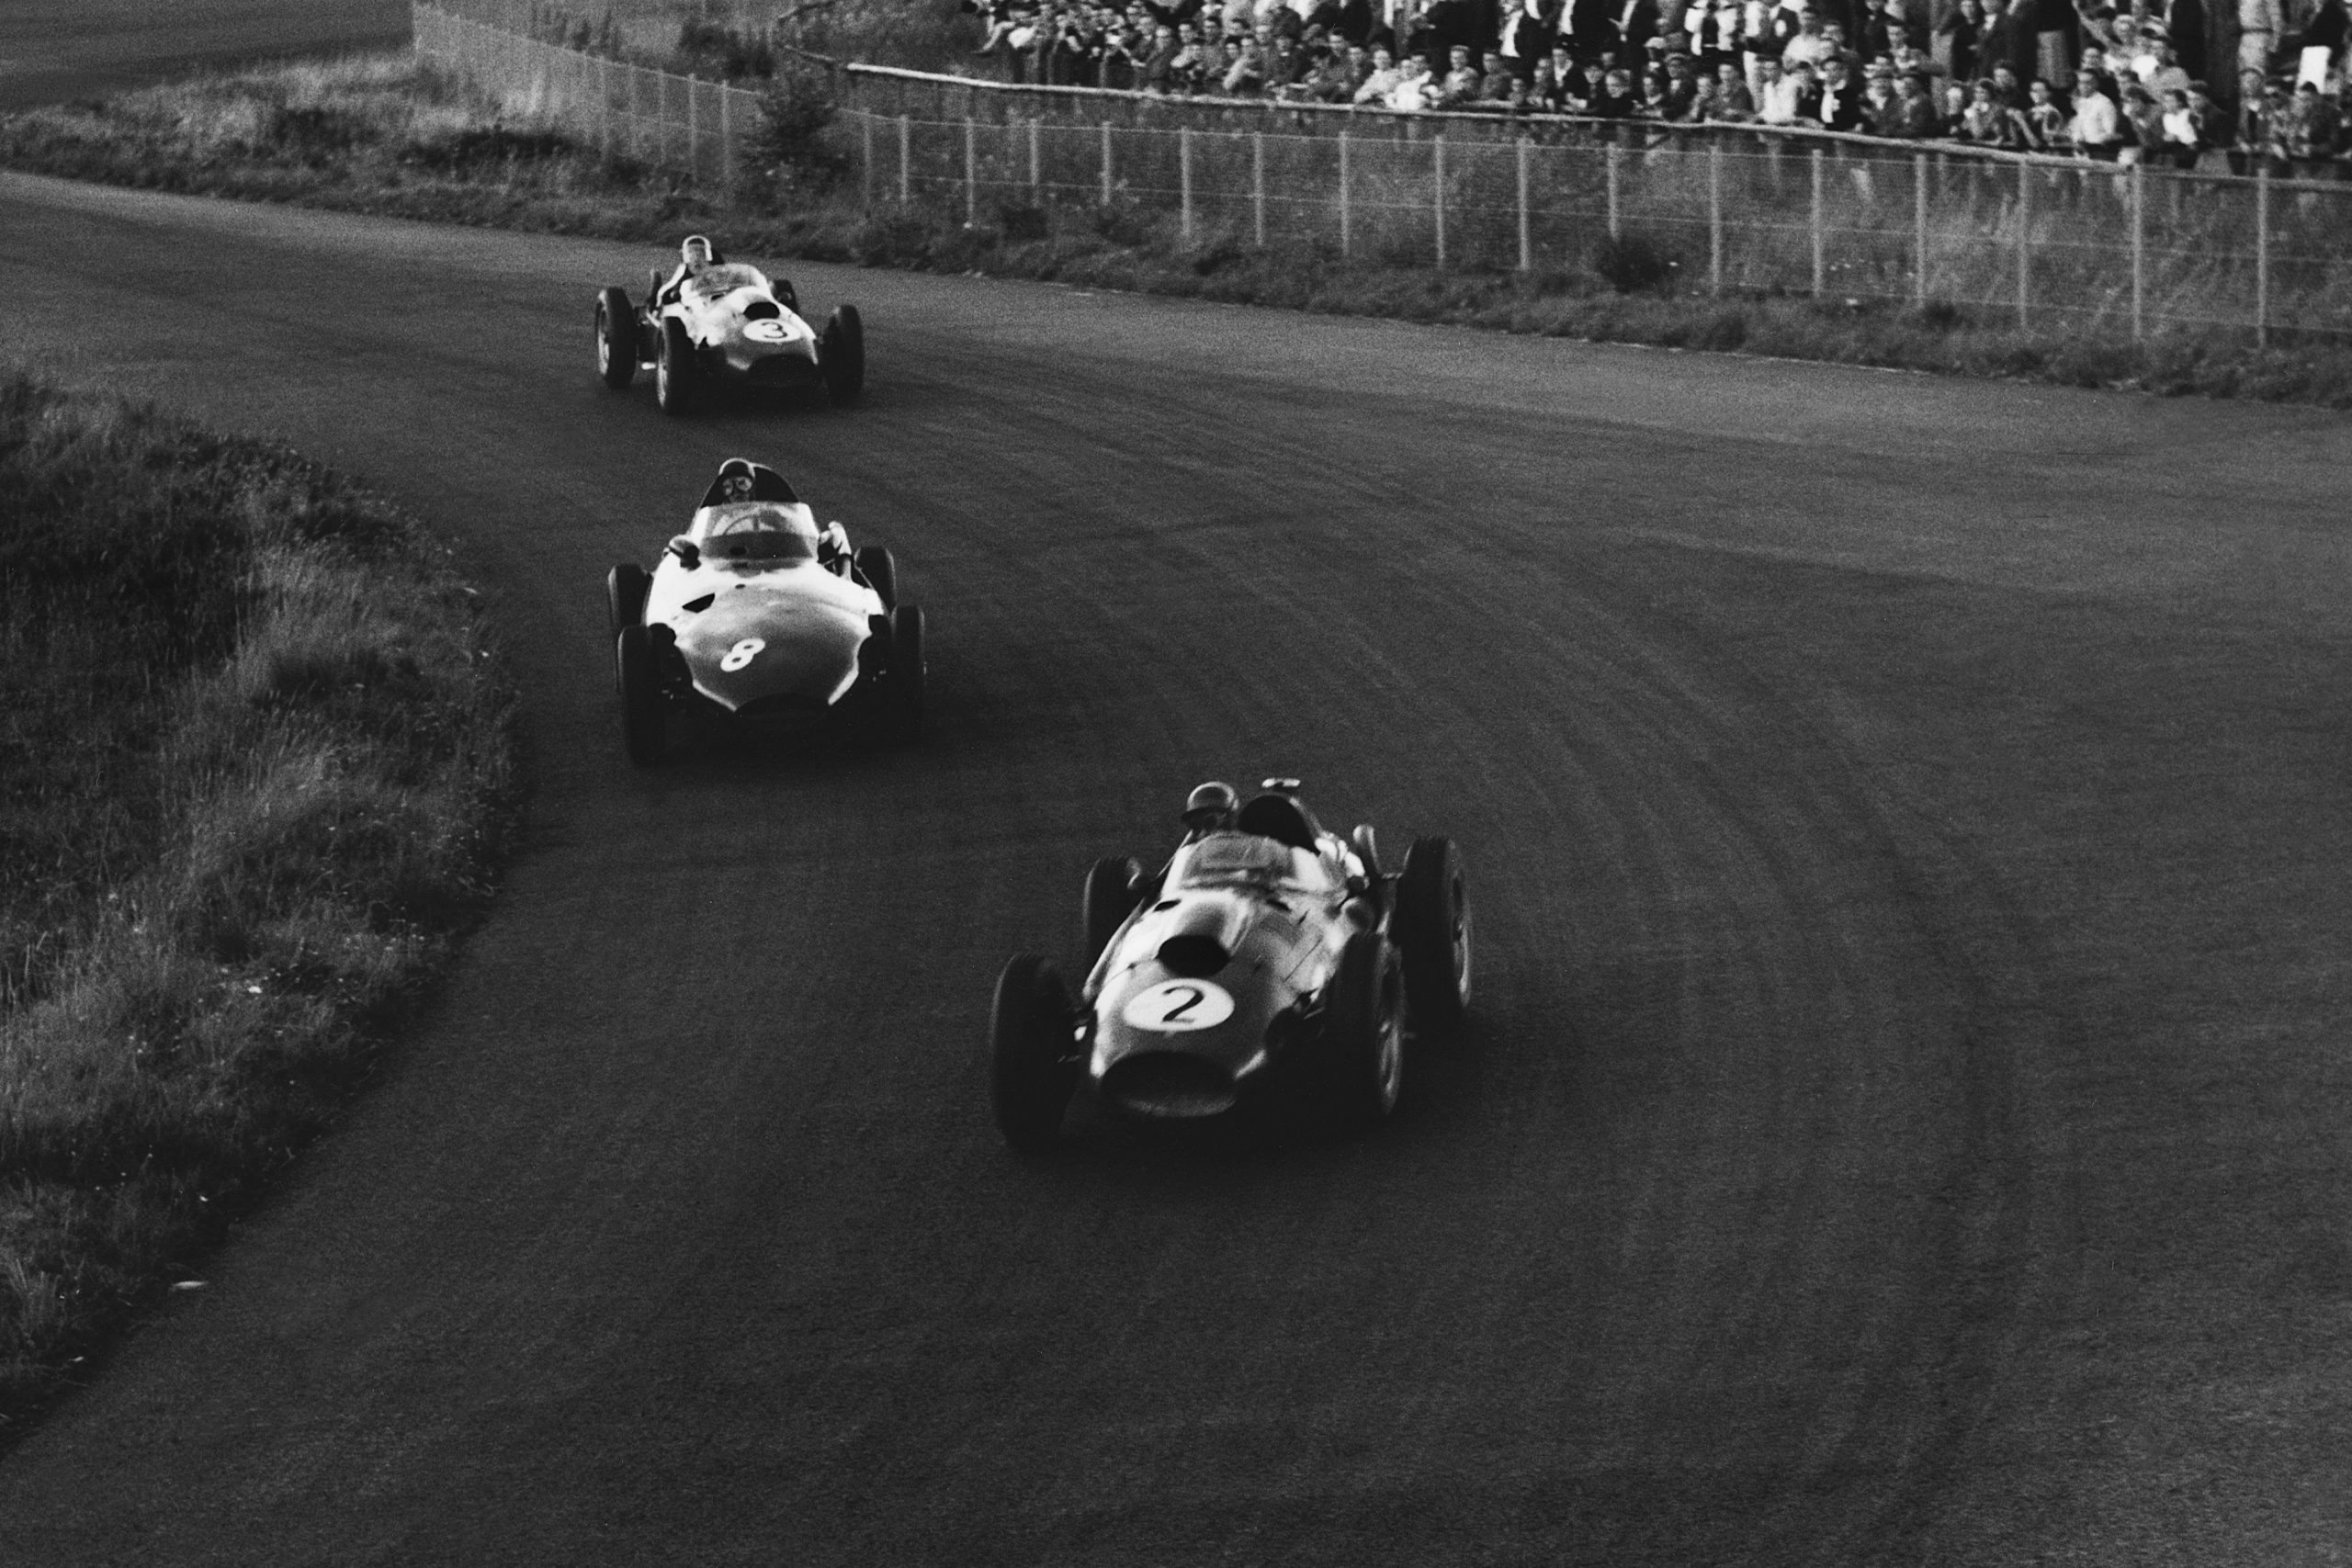 Peter Collins in his Ferarri Dino 246leads Tony Brooks in a Vanwall and Mike Hawthorn in his Ferrari Dino 246.